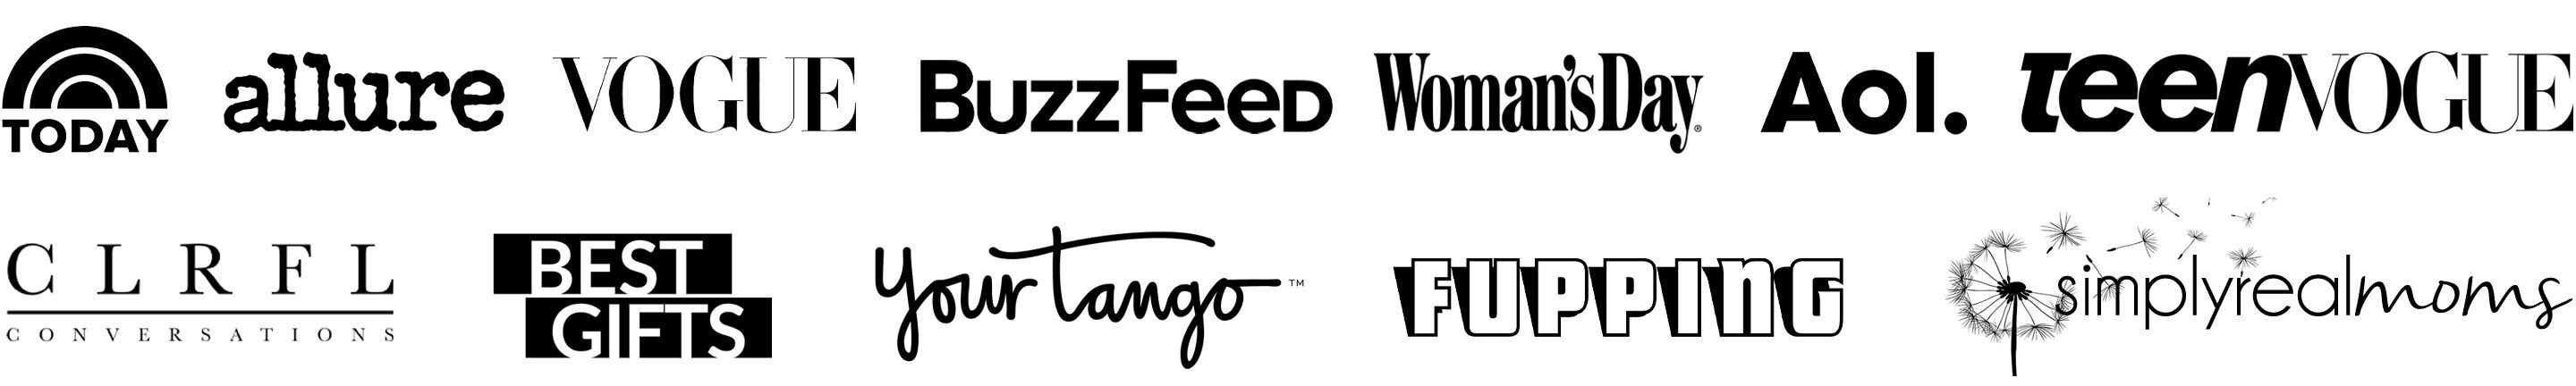 Press Icons: Today, Allure, Vogue, Buzzfeed TeenVogue, Woman's Day, AOL, CLRFL Conversations, Best Gifts, YourTango, Fupping, Simply Real Moms